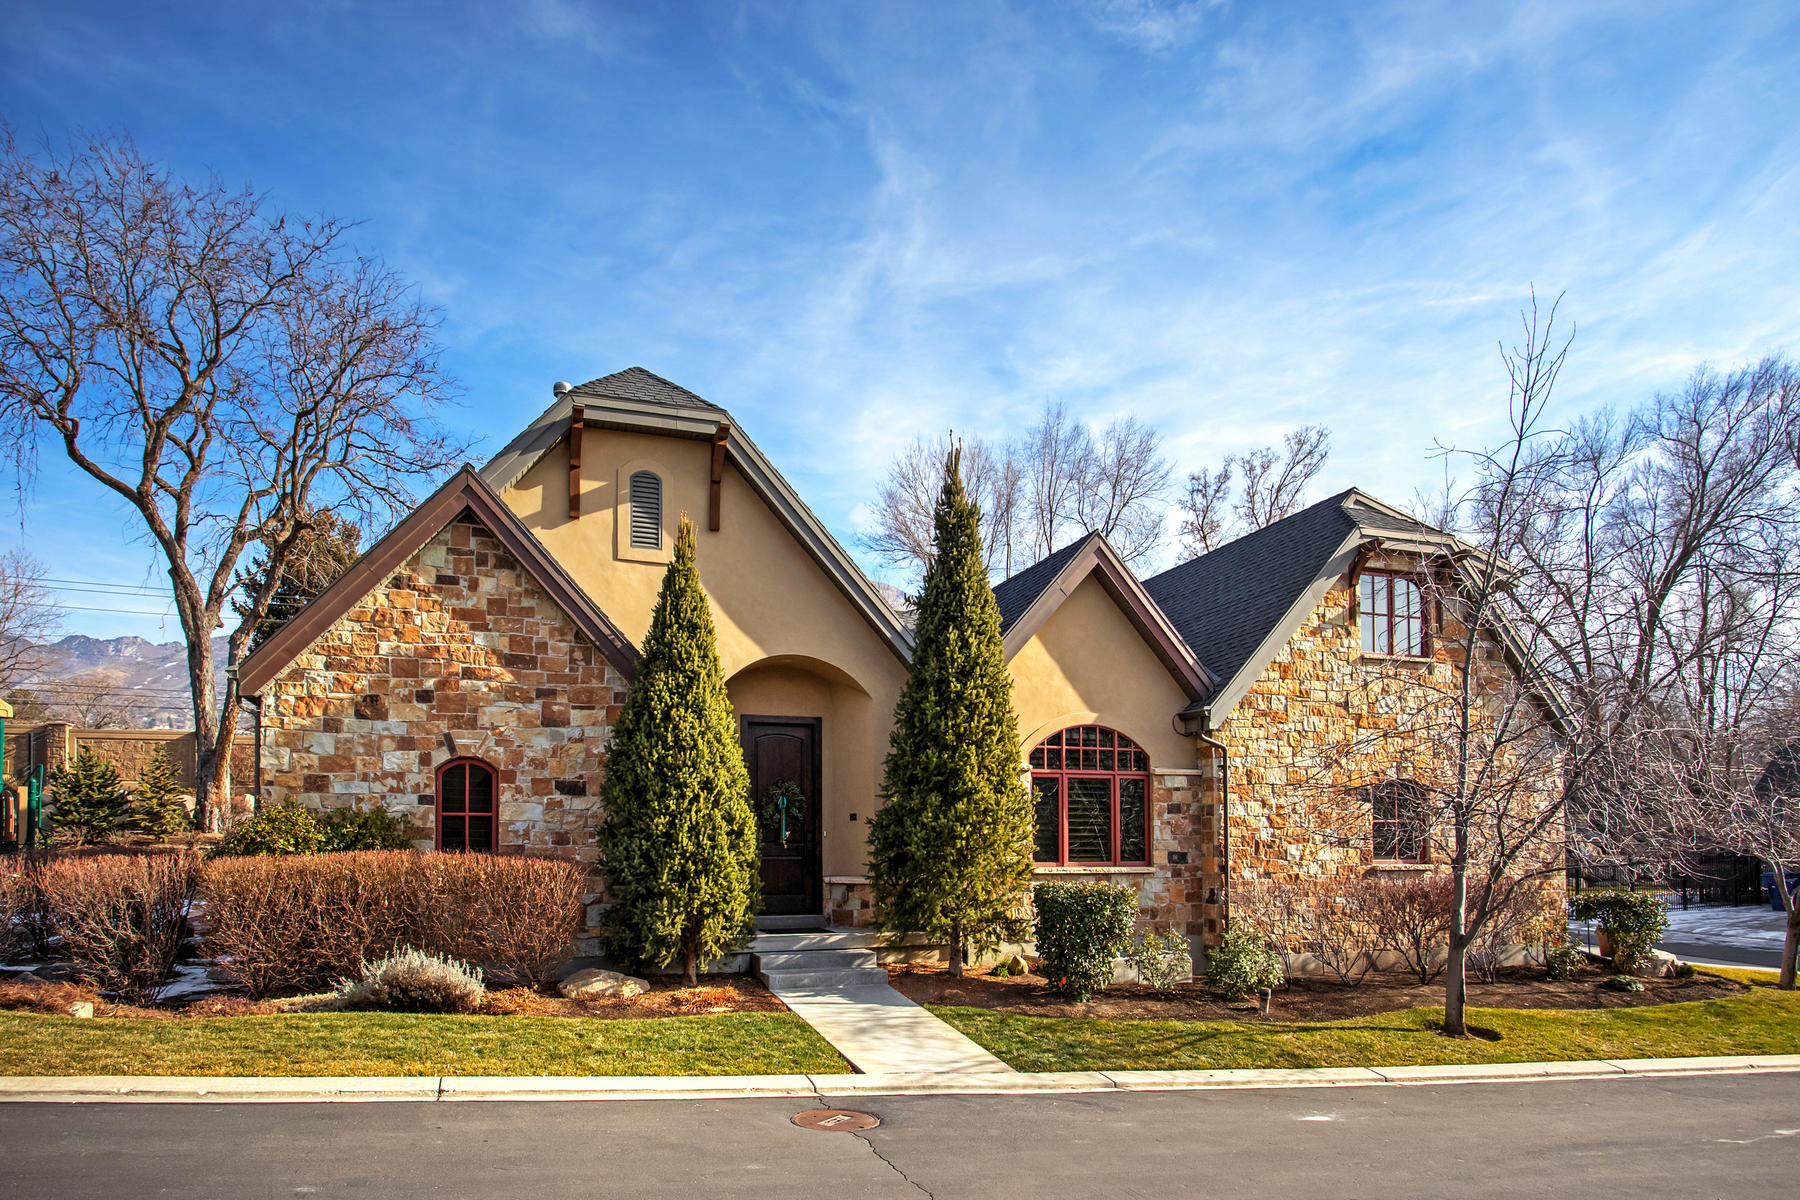 Single Family Home for Sale at 5000 Sq Foot Beauty in Holladay 4949 S Holladay Pines Ct Holladay, Utah 84117 United States